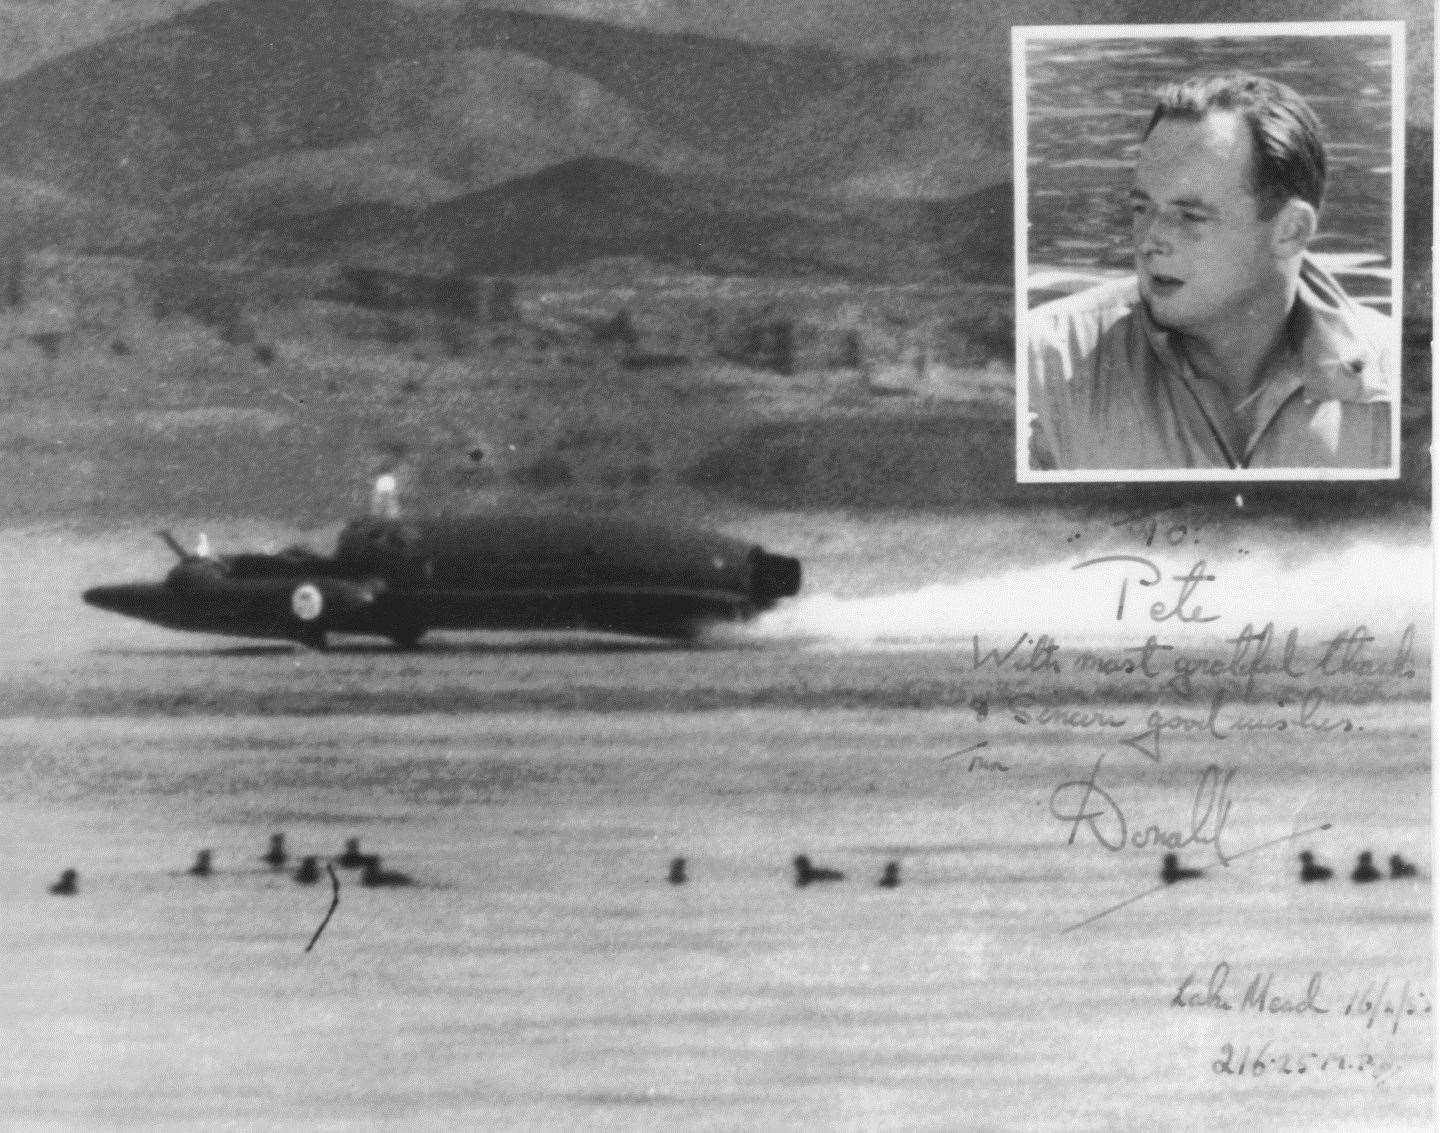 Peter Williams reported on the death of Donald Campbell, who broke the world water speed record in the boat The Bluebird